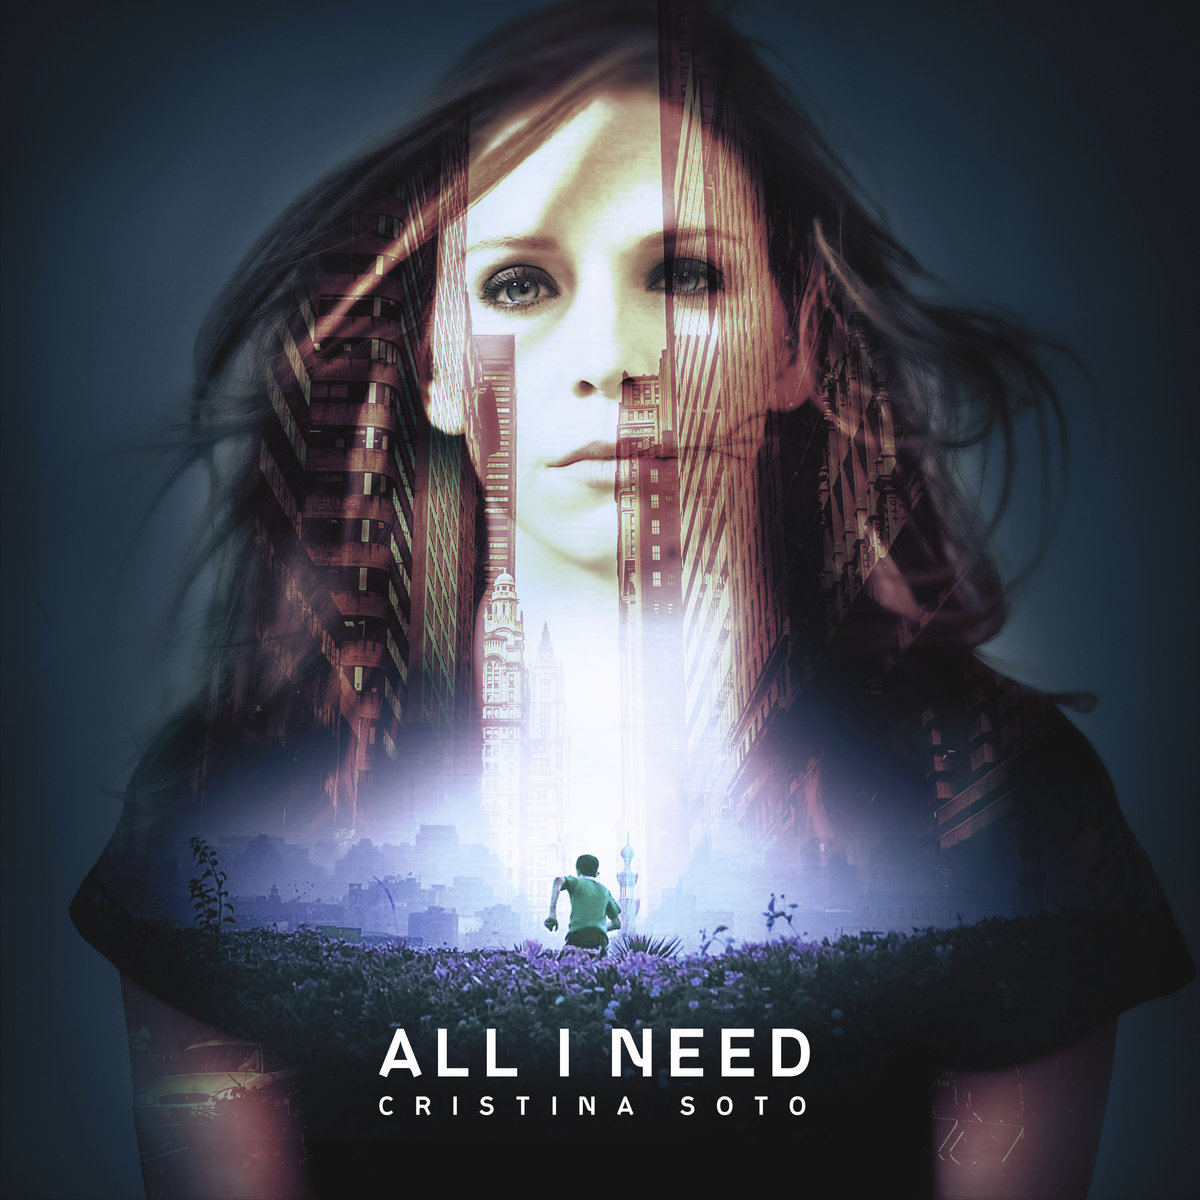 Cristina Soto & Michael Teixeira - In You I Fall @ 'All I Need' album (Austin)